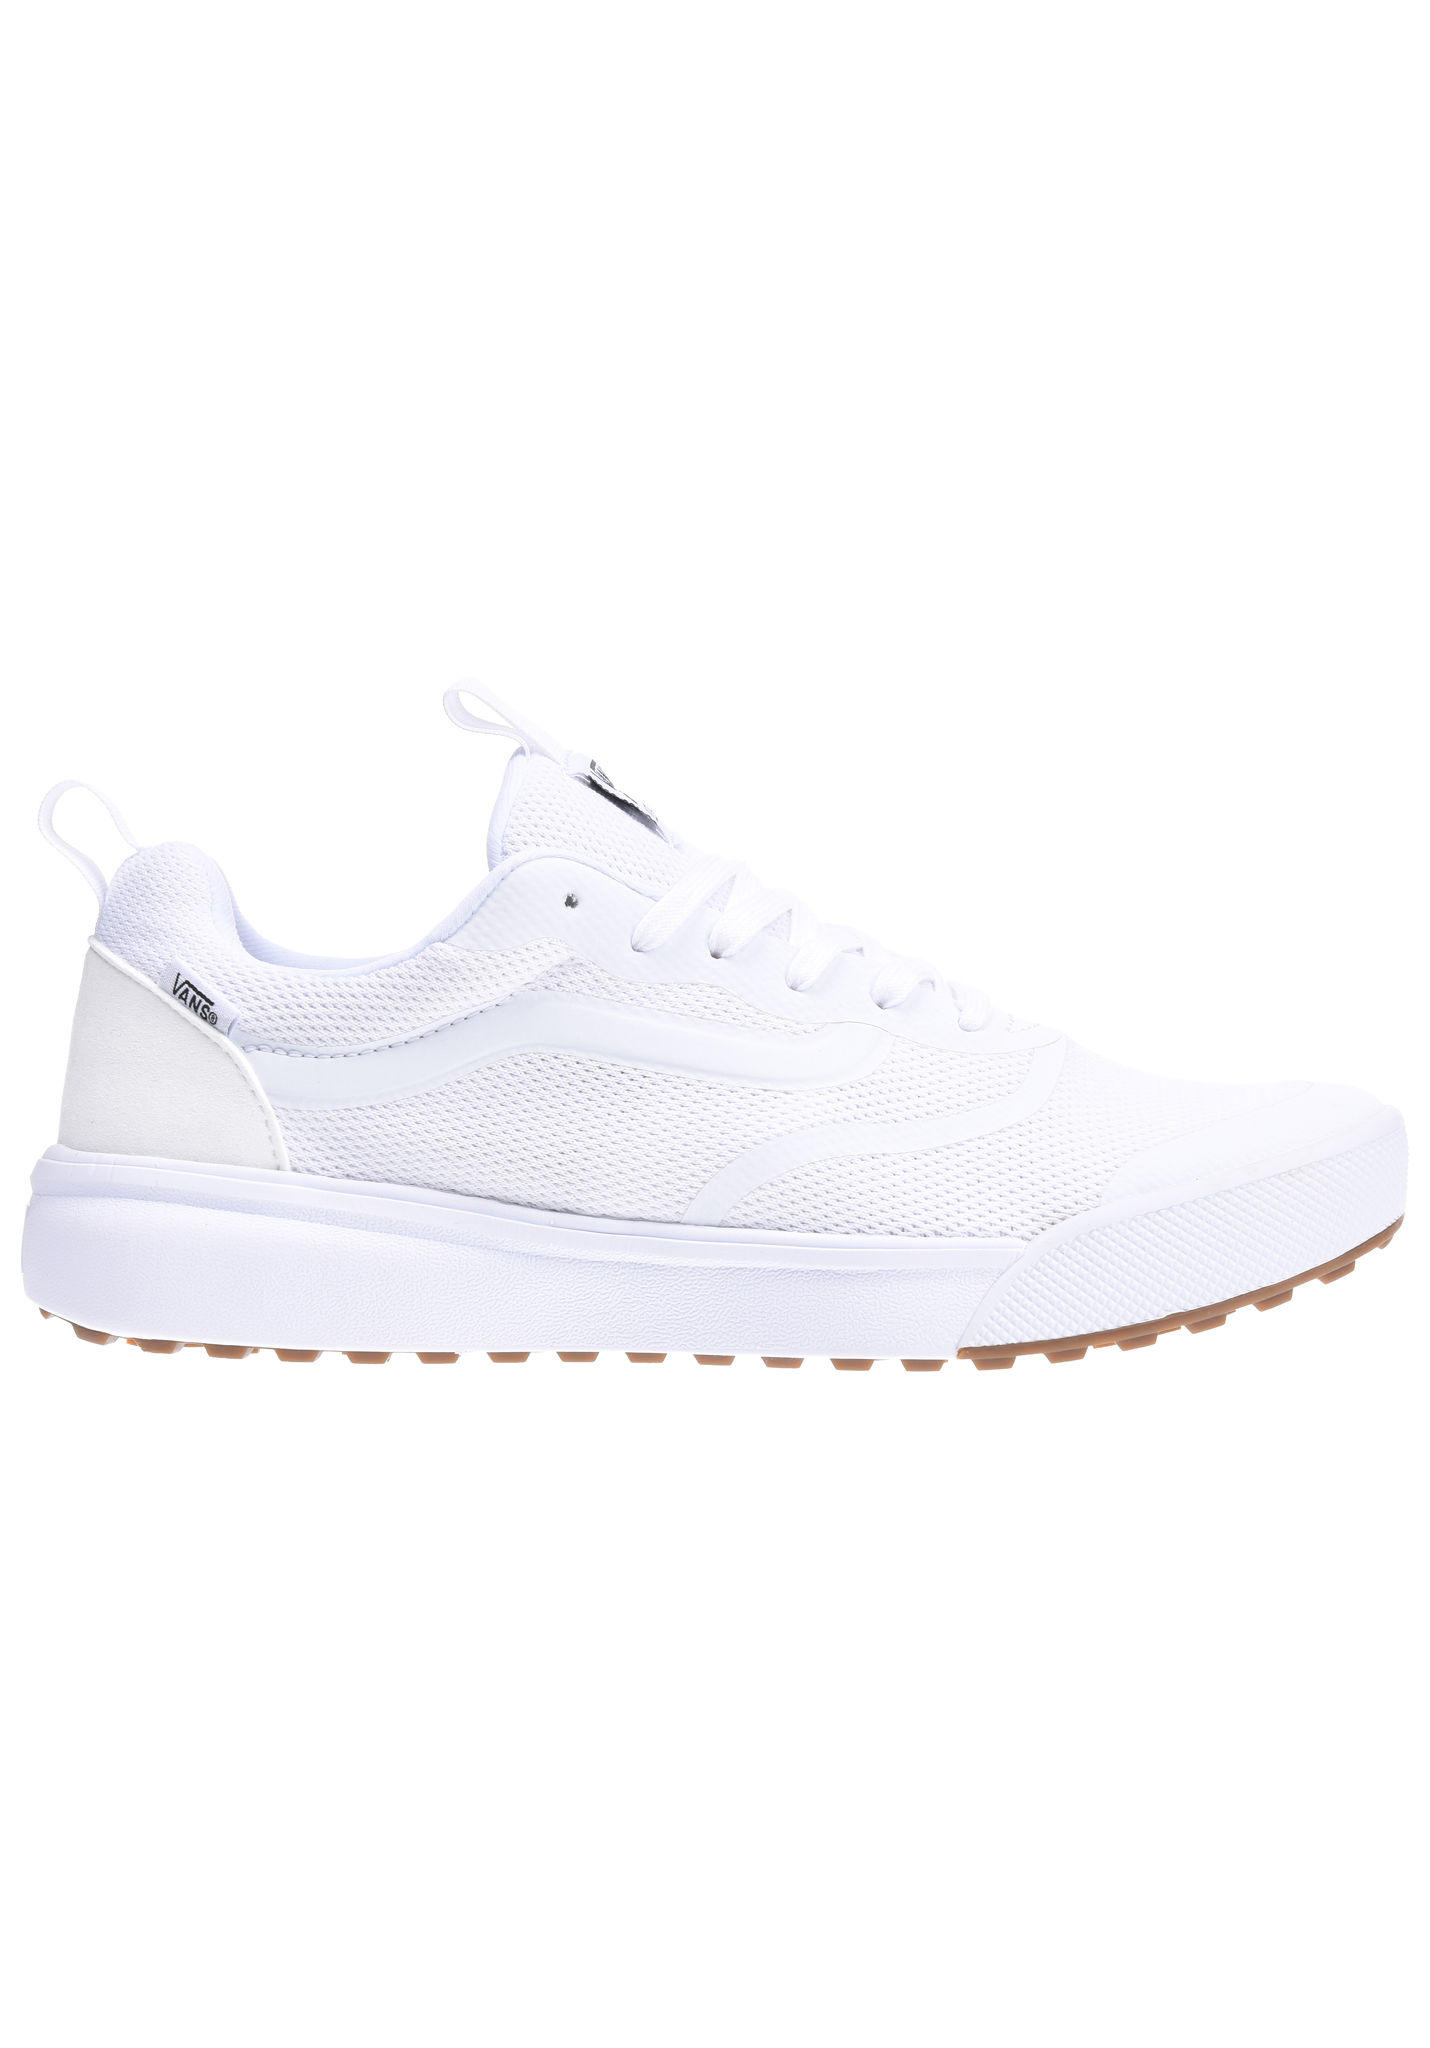 0f493bade97391 Vans Ultra Range Rapidweld - Sneakers for Men - White - Planet Sports